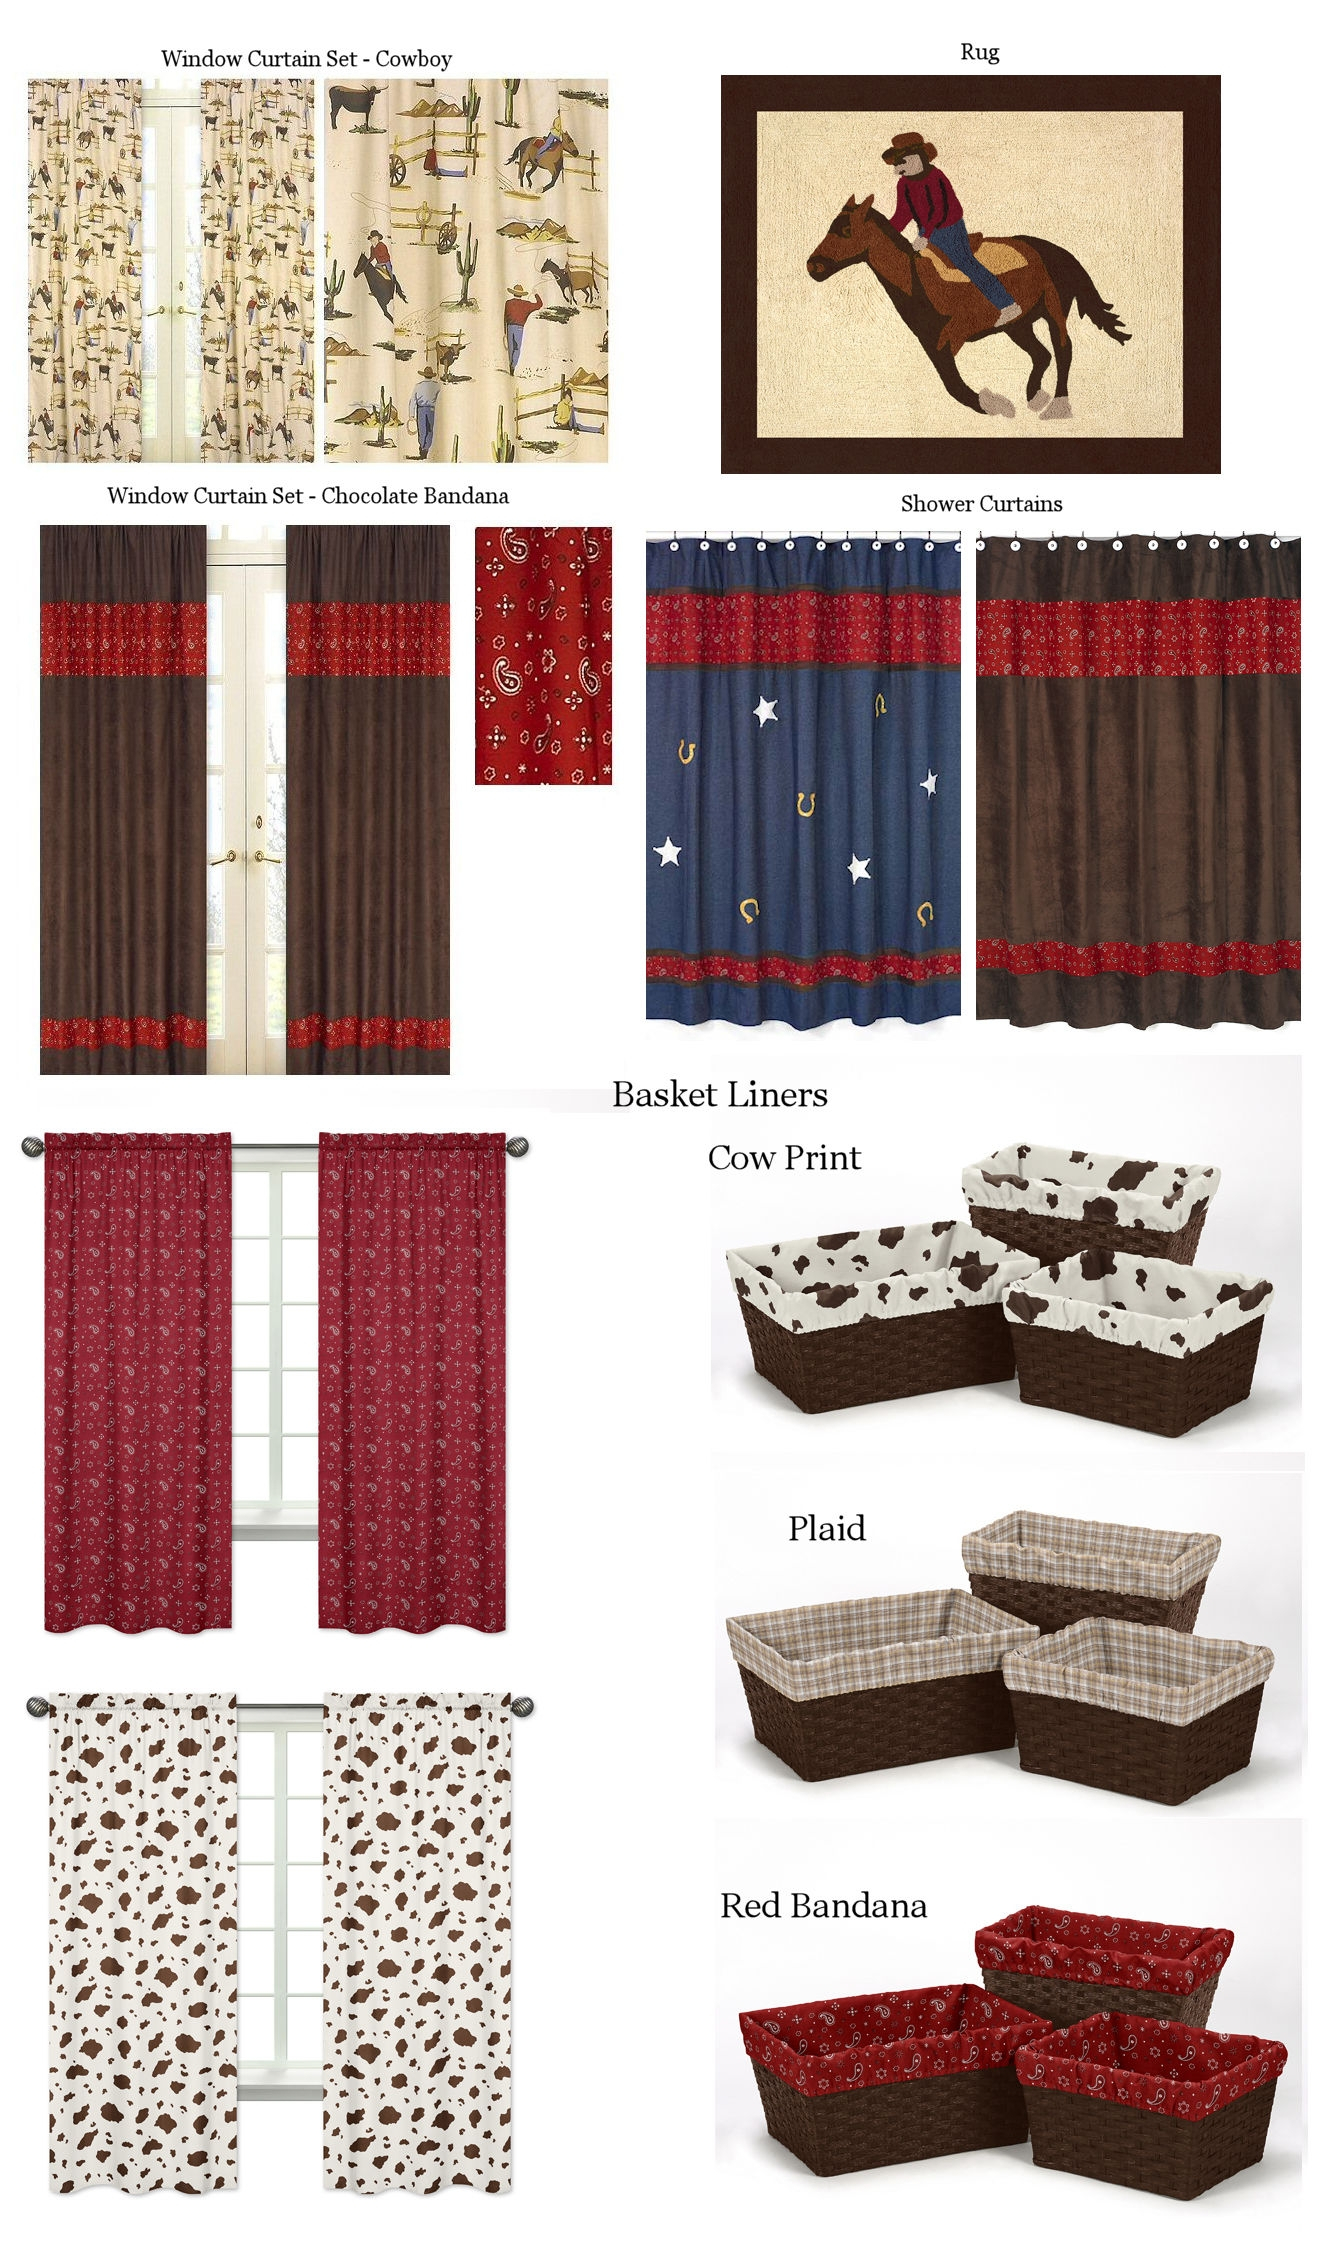 Brown Cow Print Shower Curtains Curtain Ideas In Size 1334 X 2241